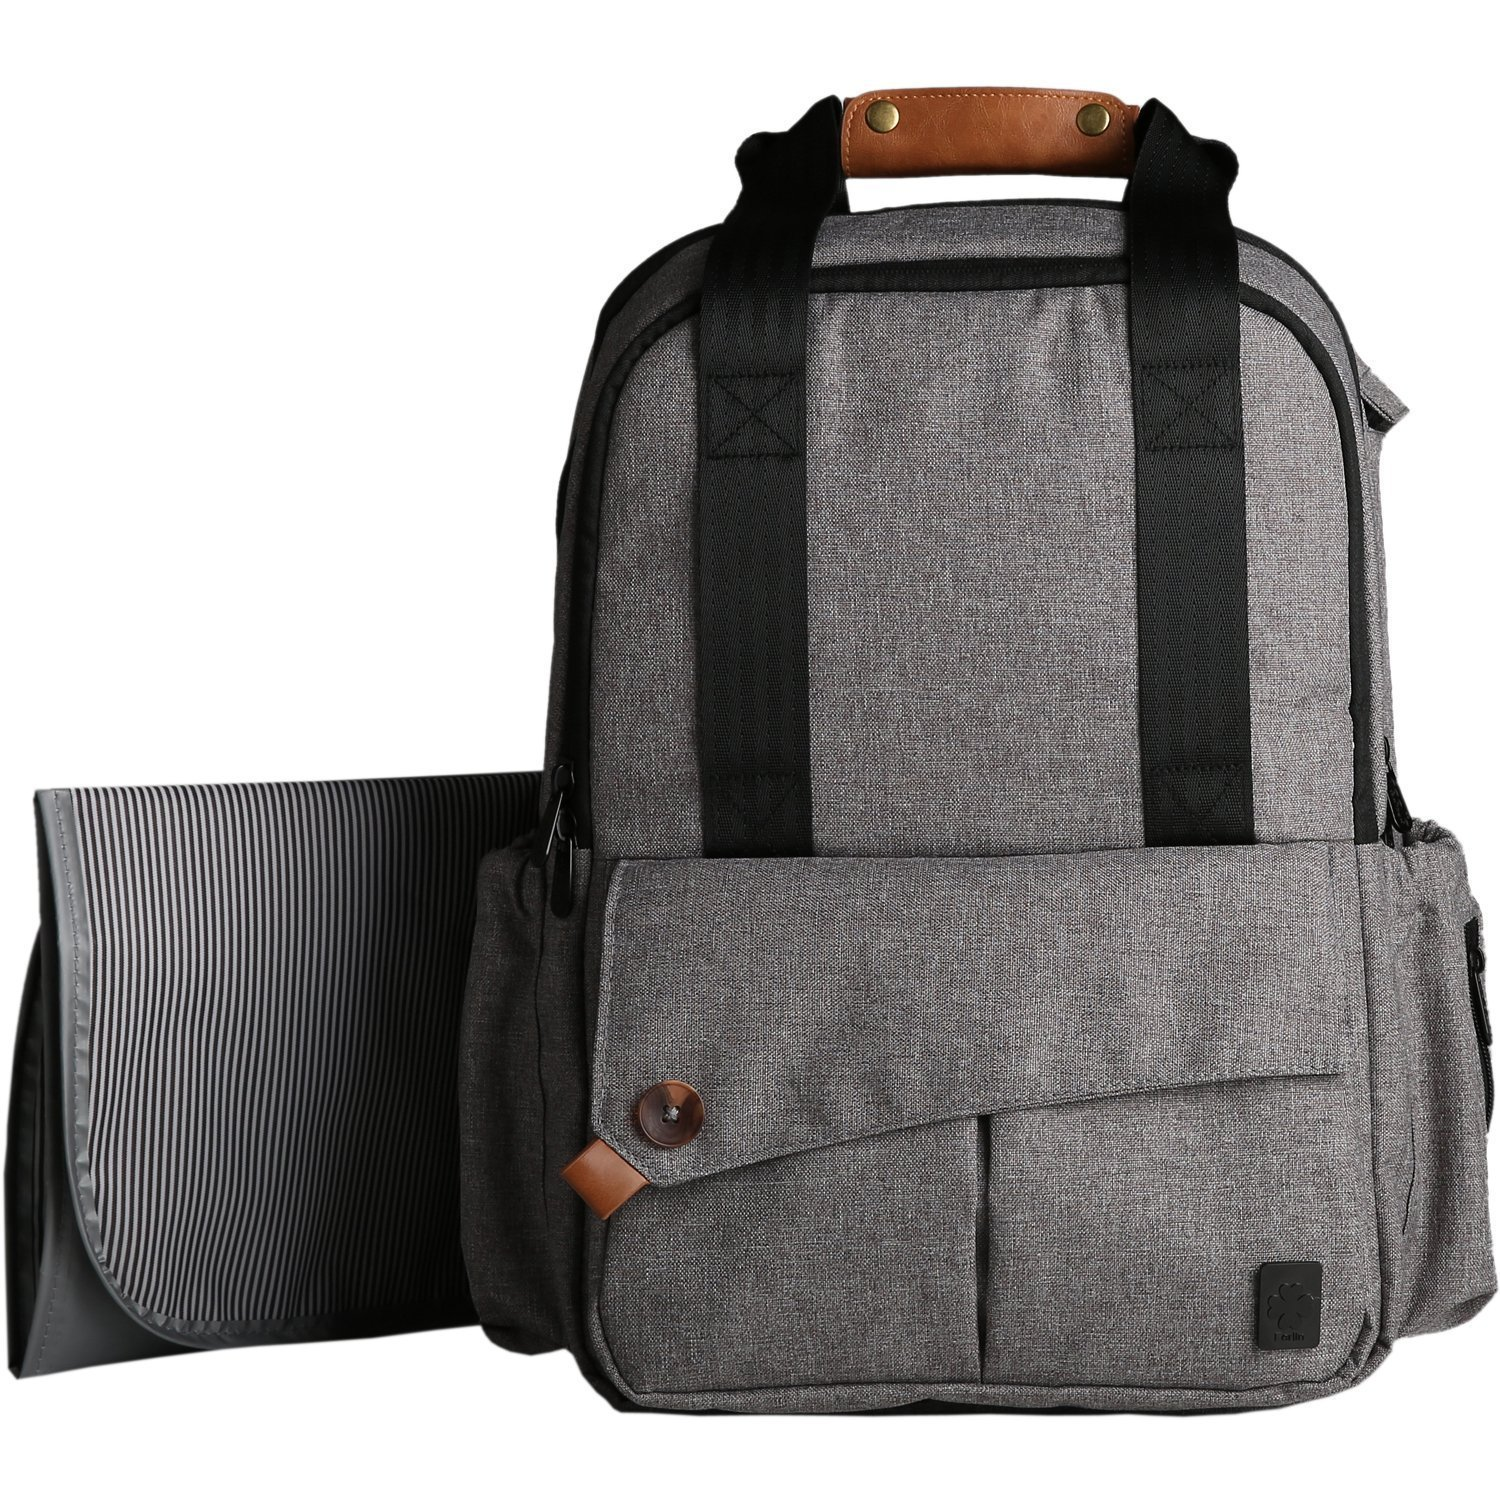 Diaper Bag Backpack Leather